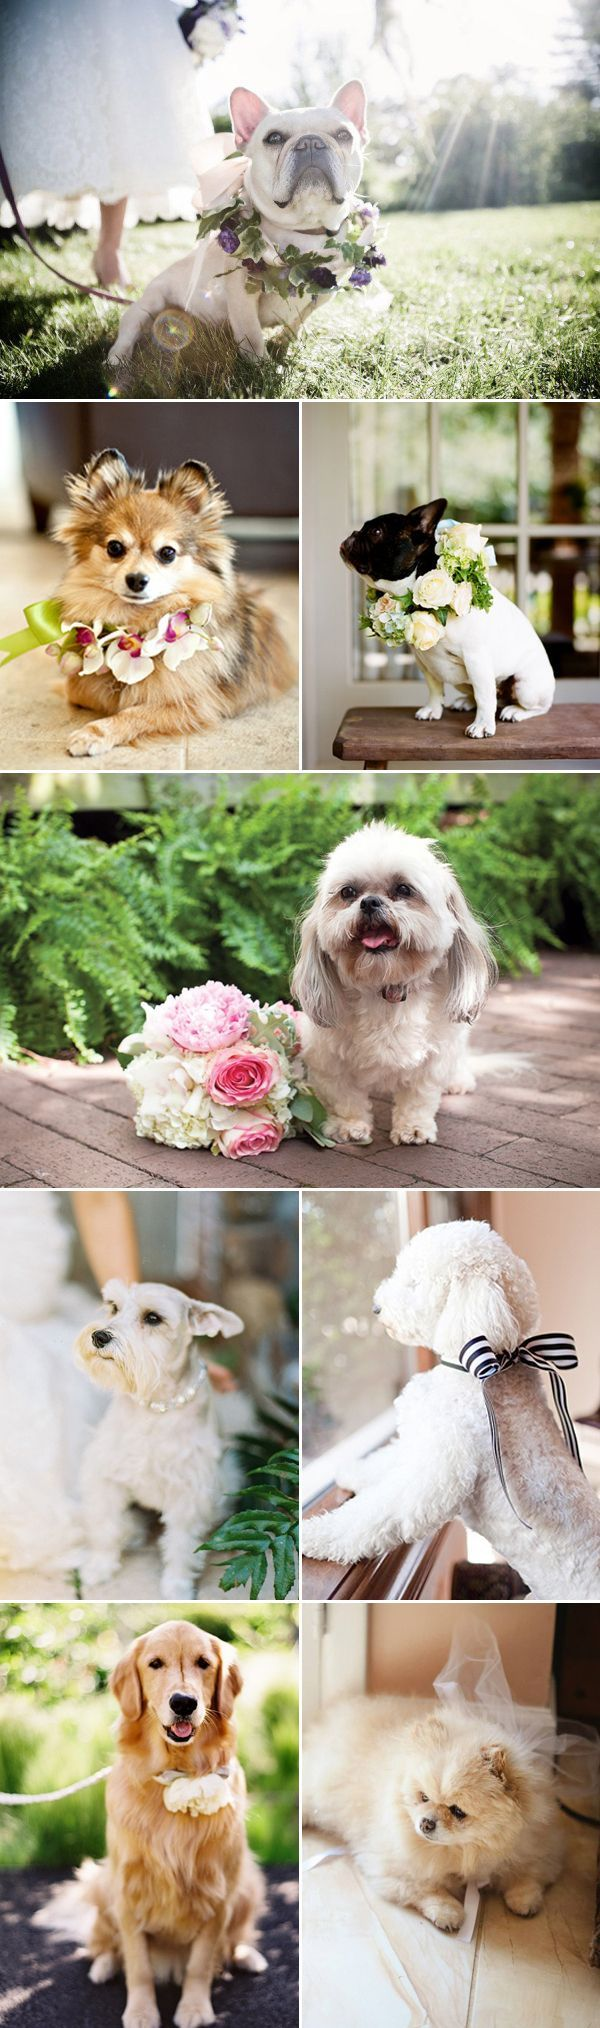 94 best Dogs in Weddings images on Pinterest | Wedding dogs, Wedding ...